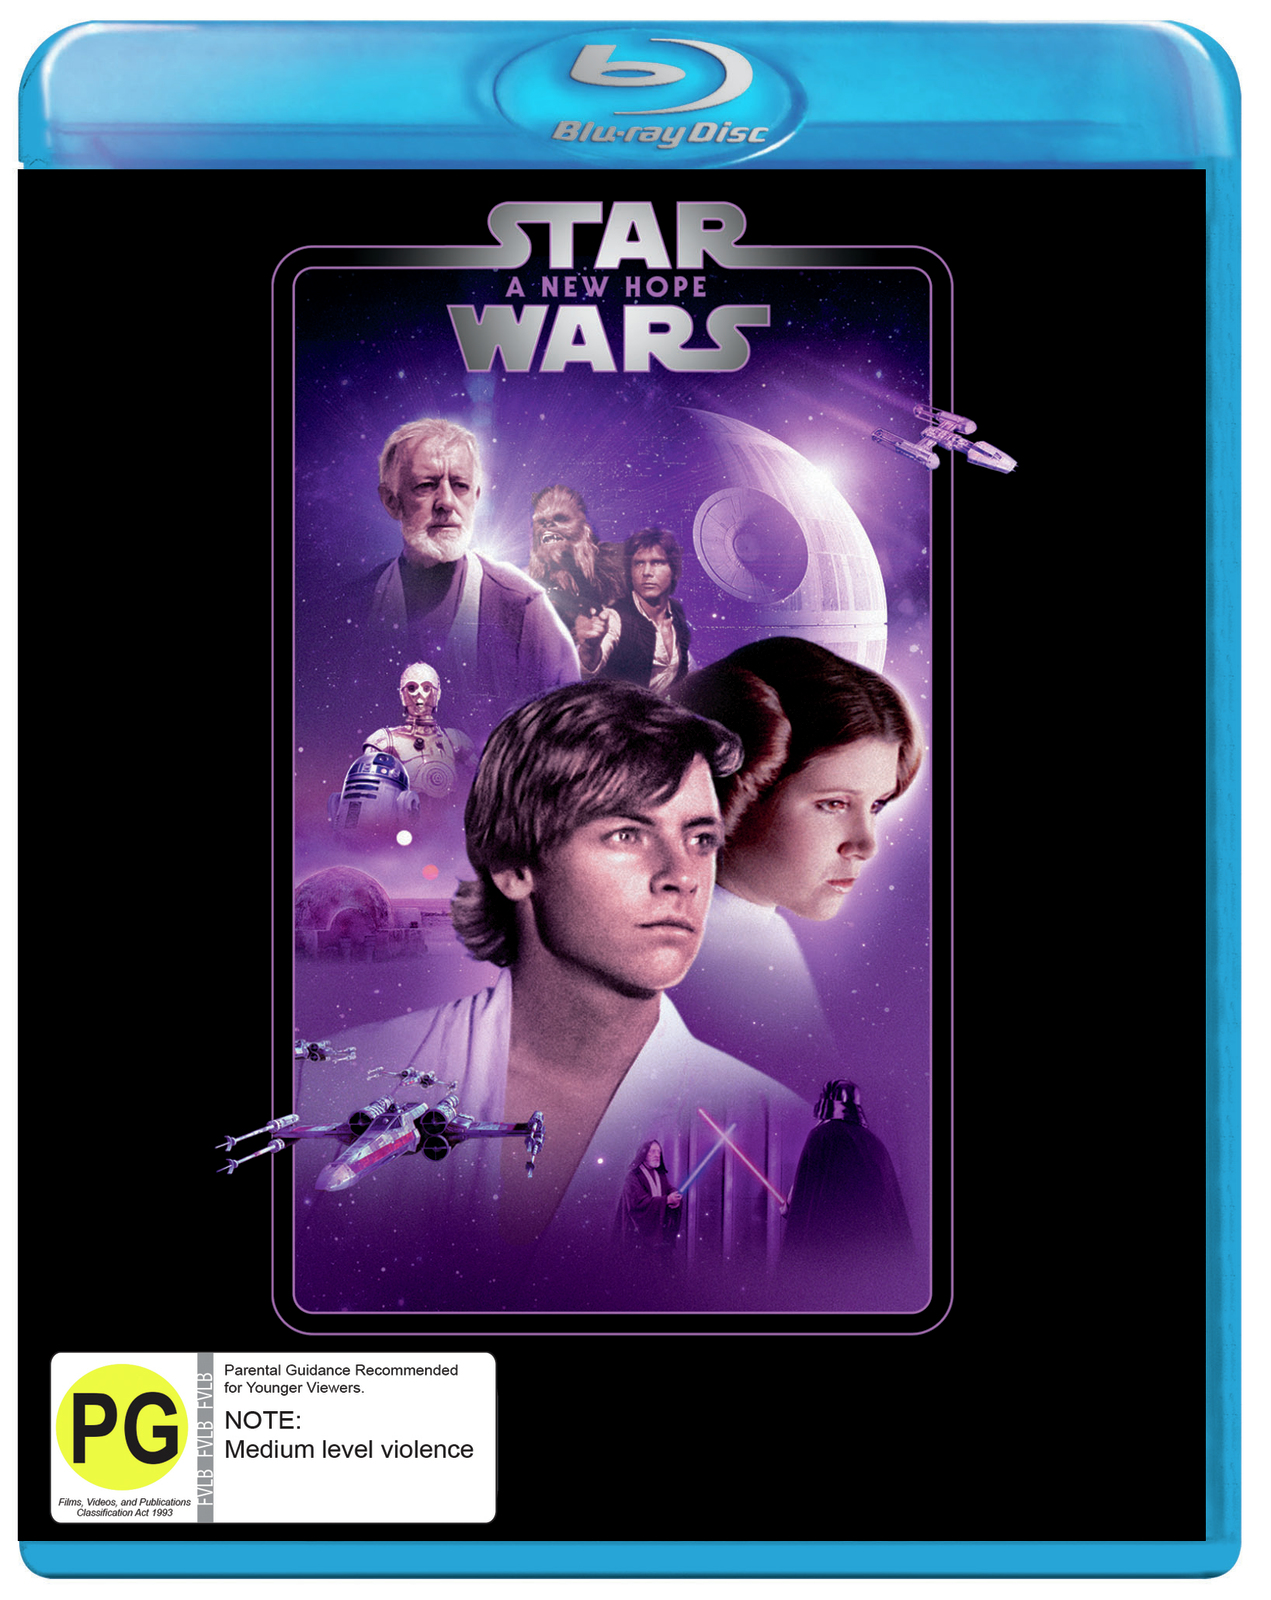 Star Wars: Episode IV - A New Hope on Blu-ray image